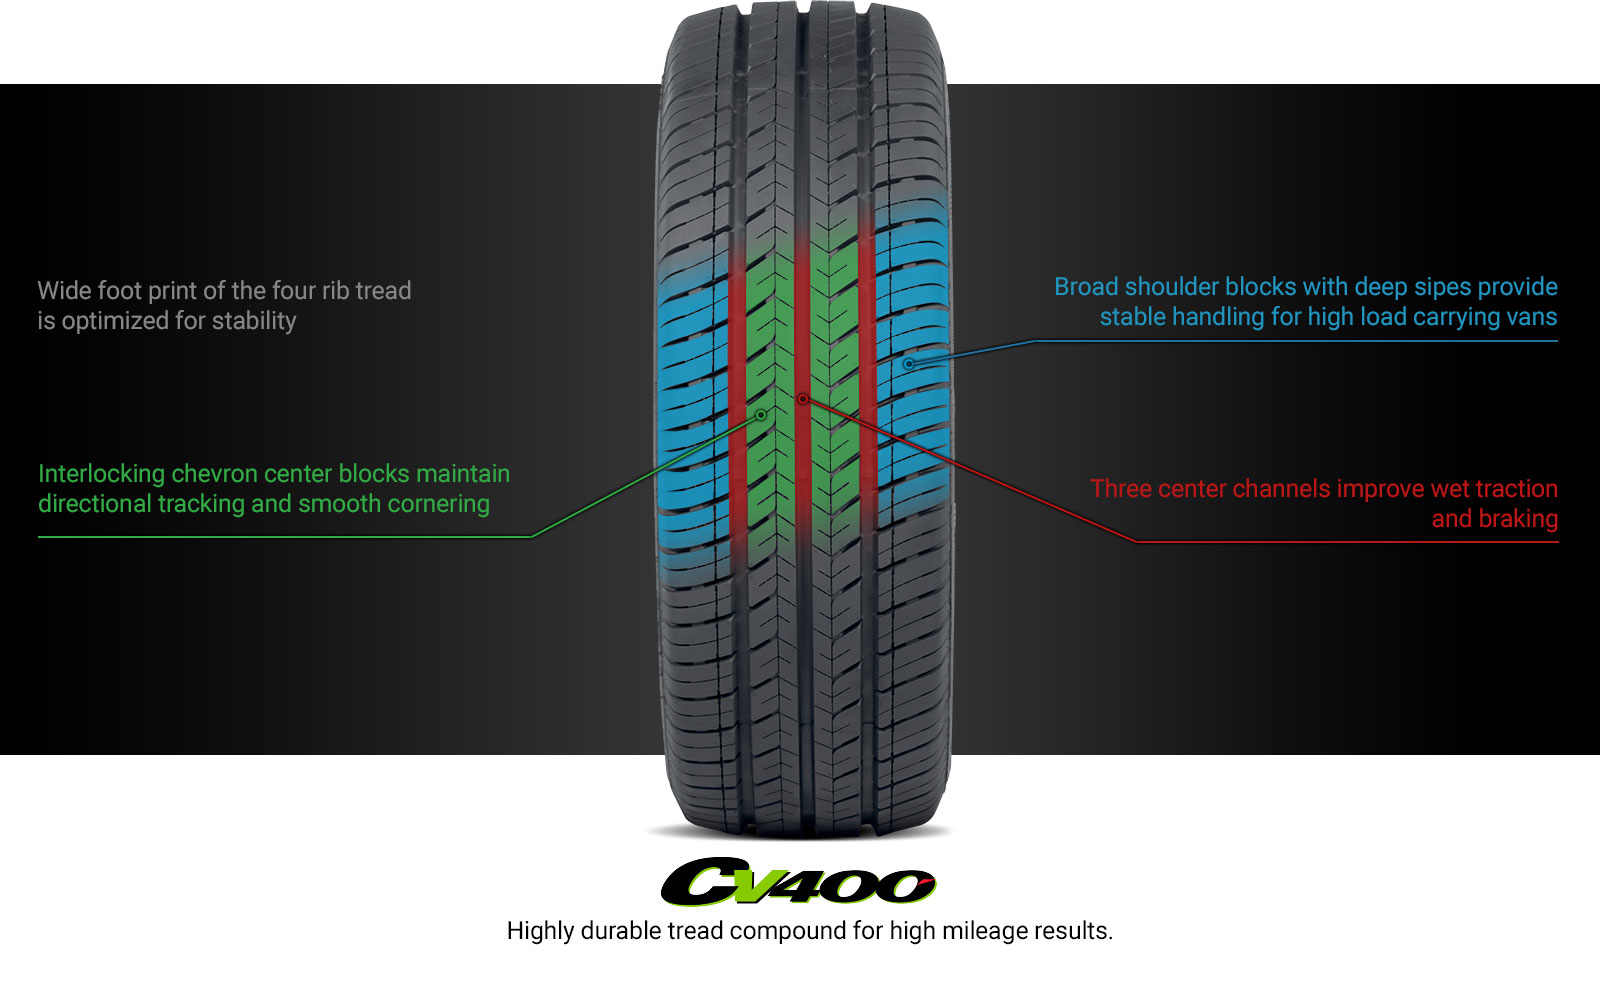 CV400 Tire Technology